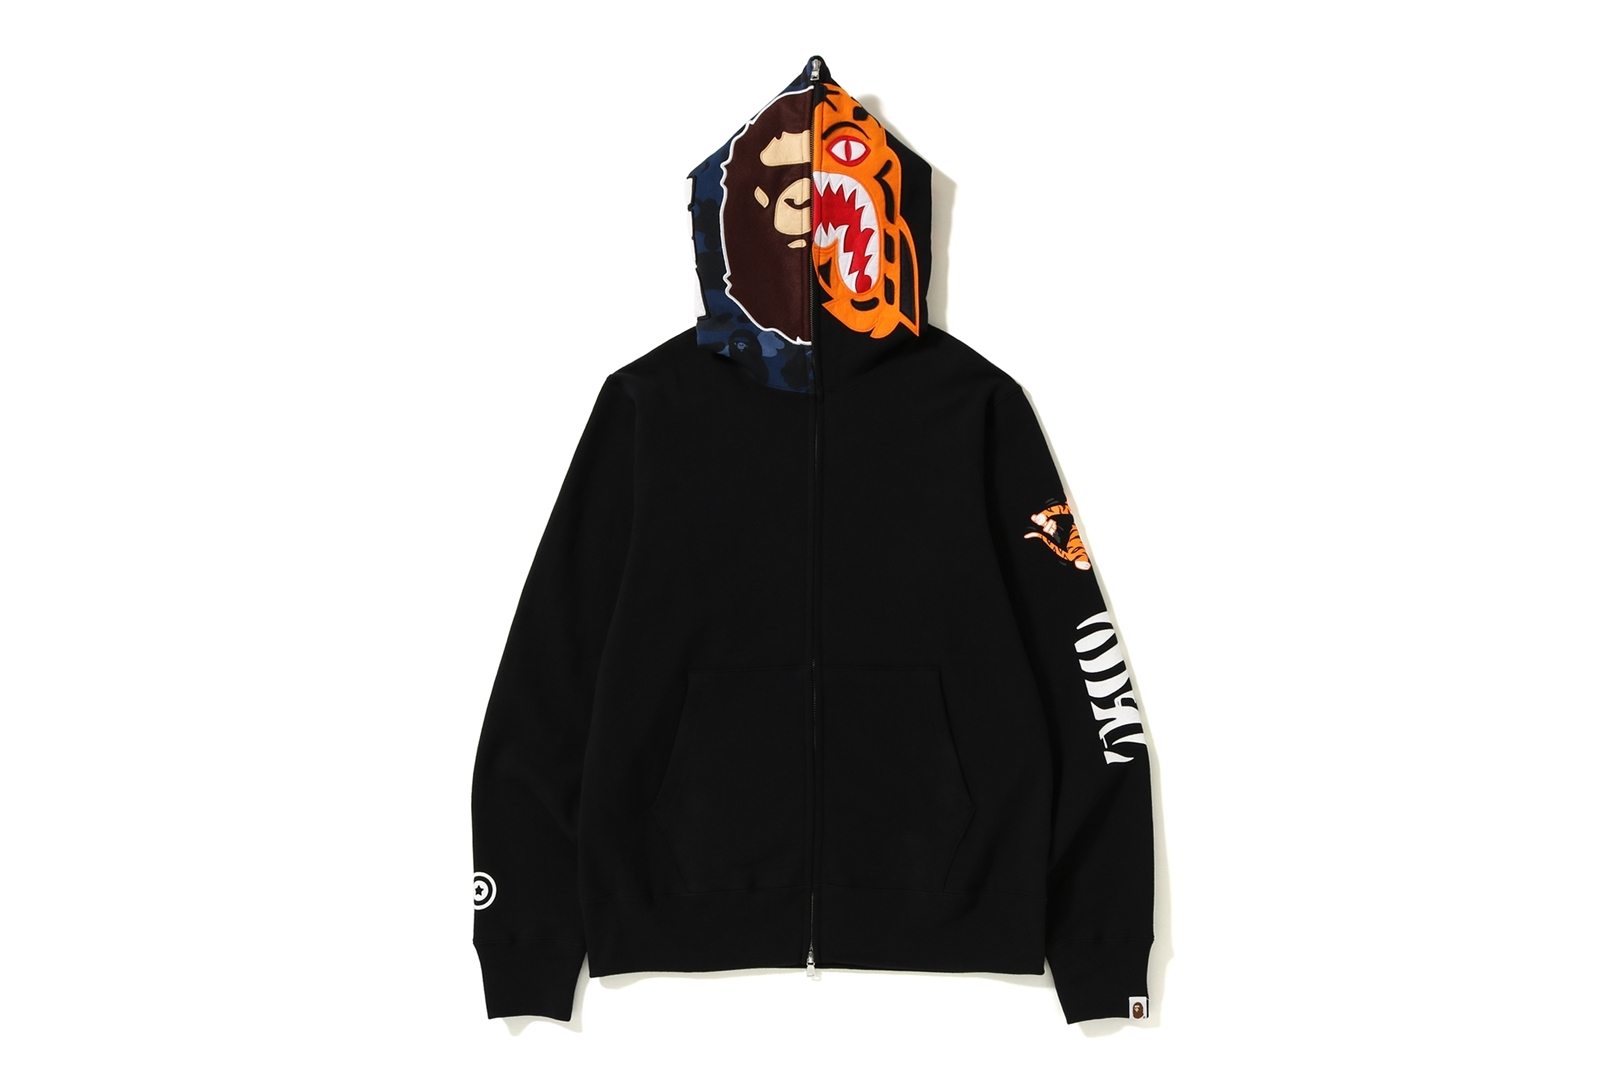 2ND APE TIGER FULL ZIP HOODIE_a0174495_17221593.jpg